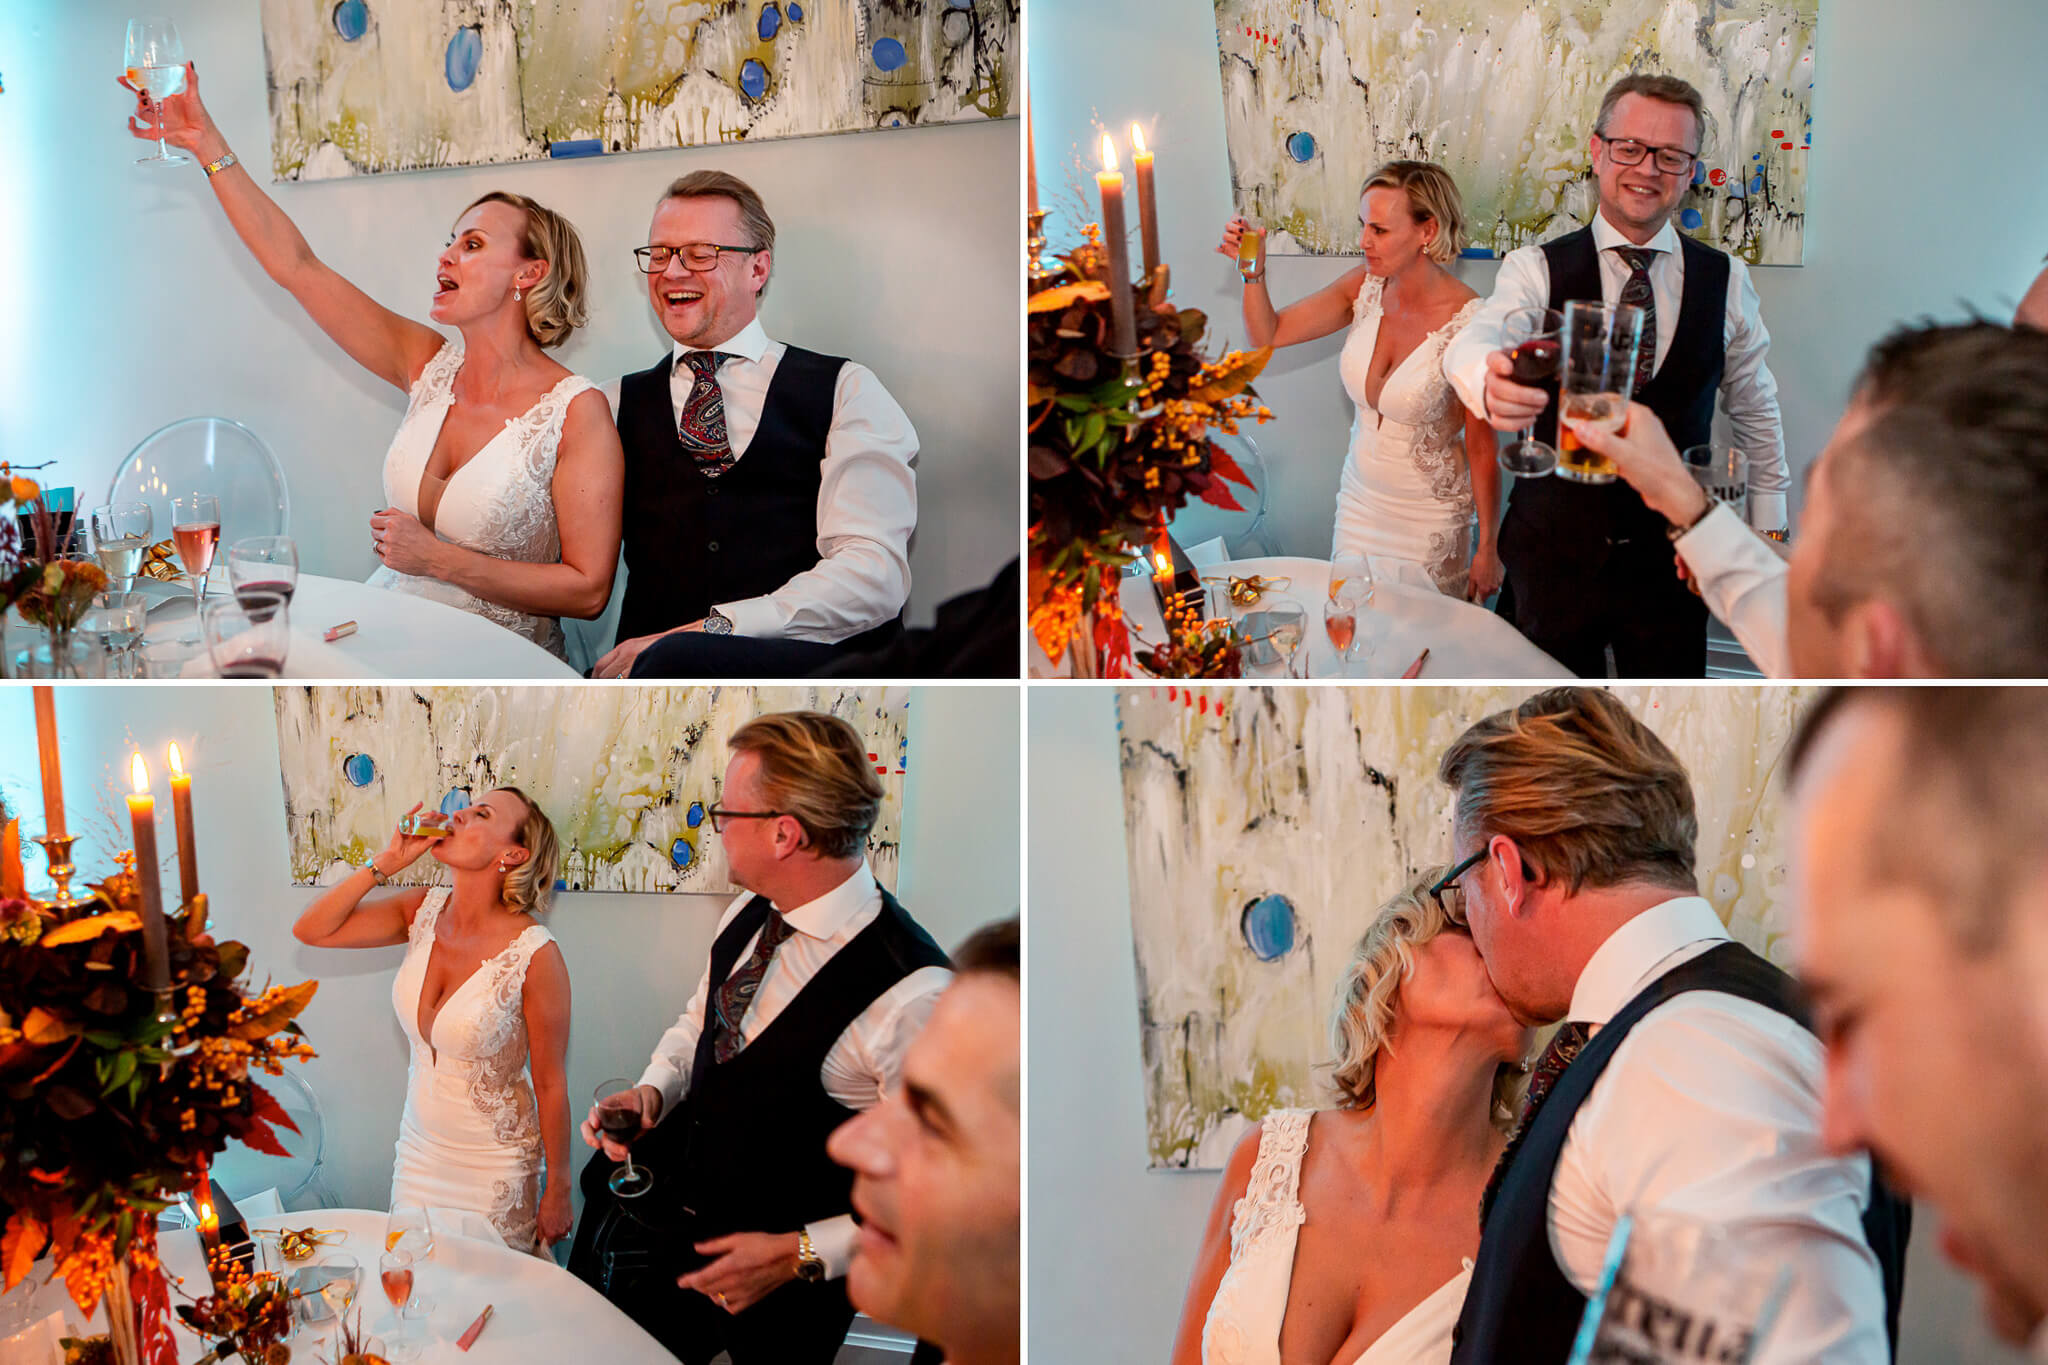 wedding-photograph-toasting-stanbury-photography